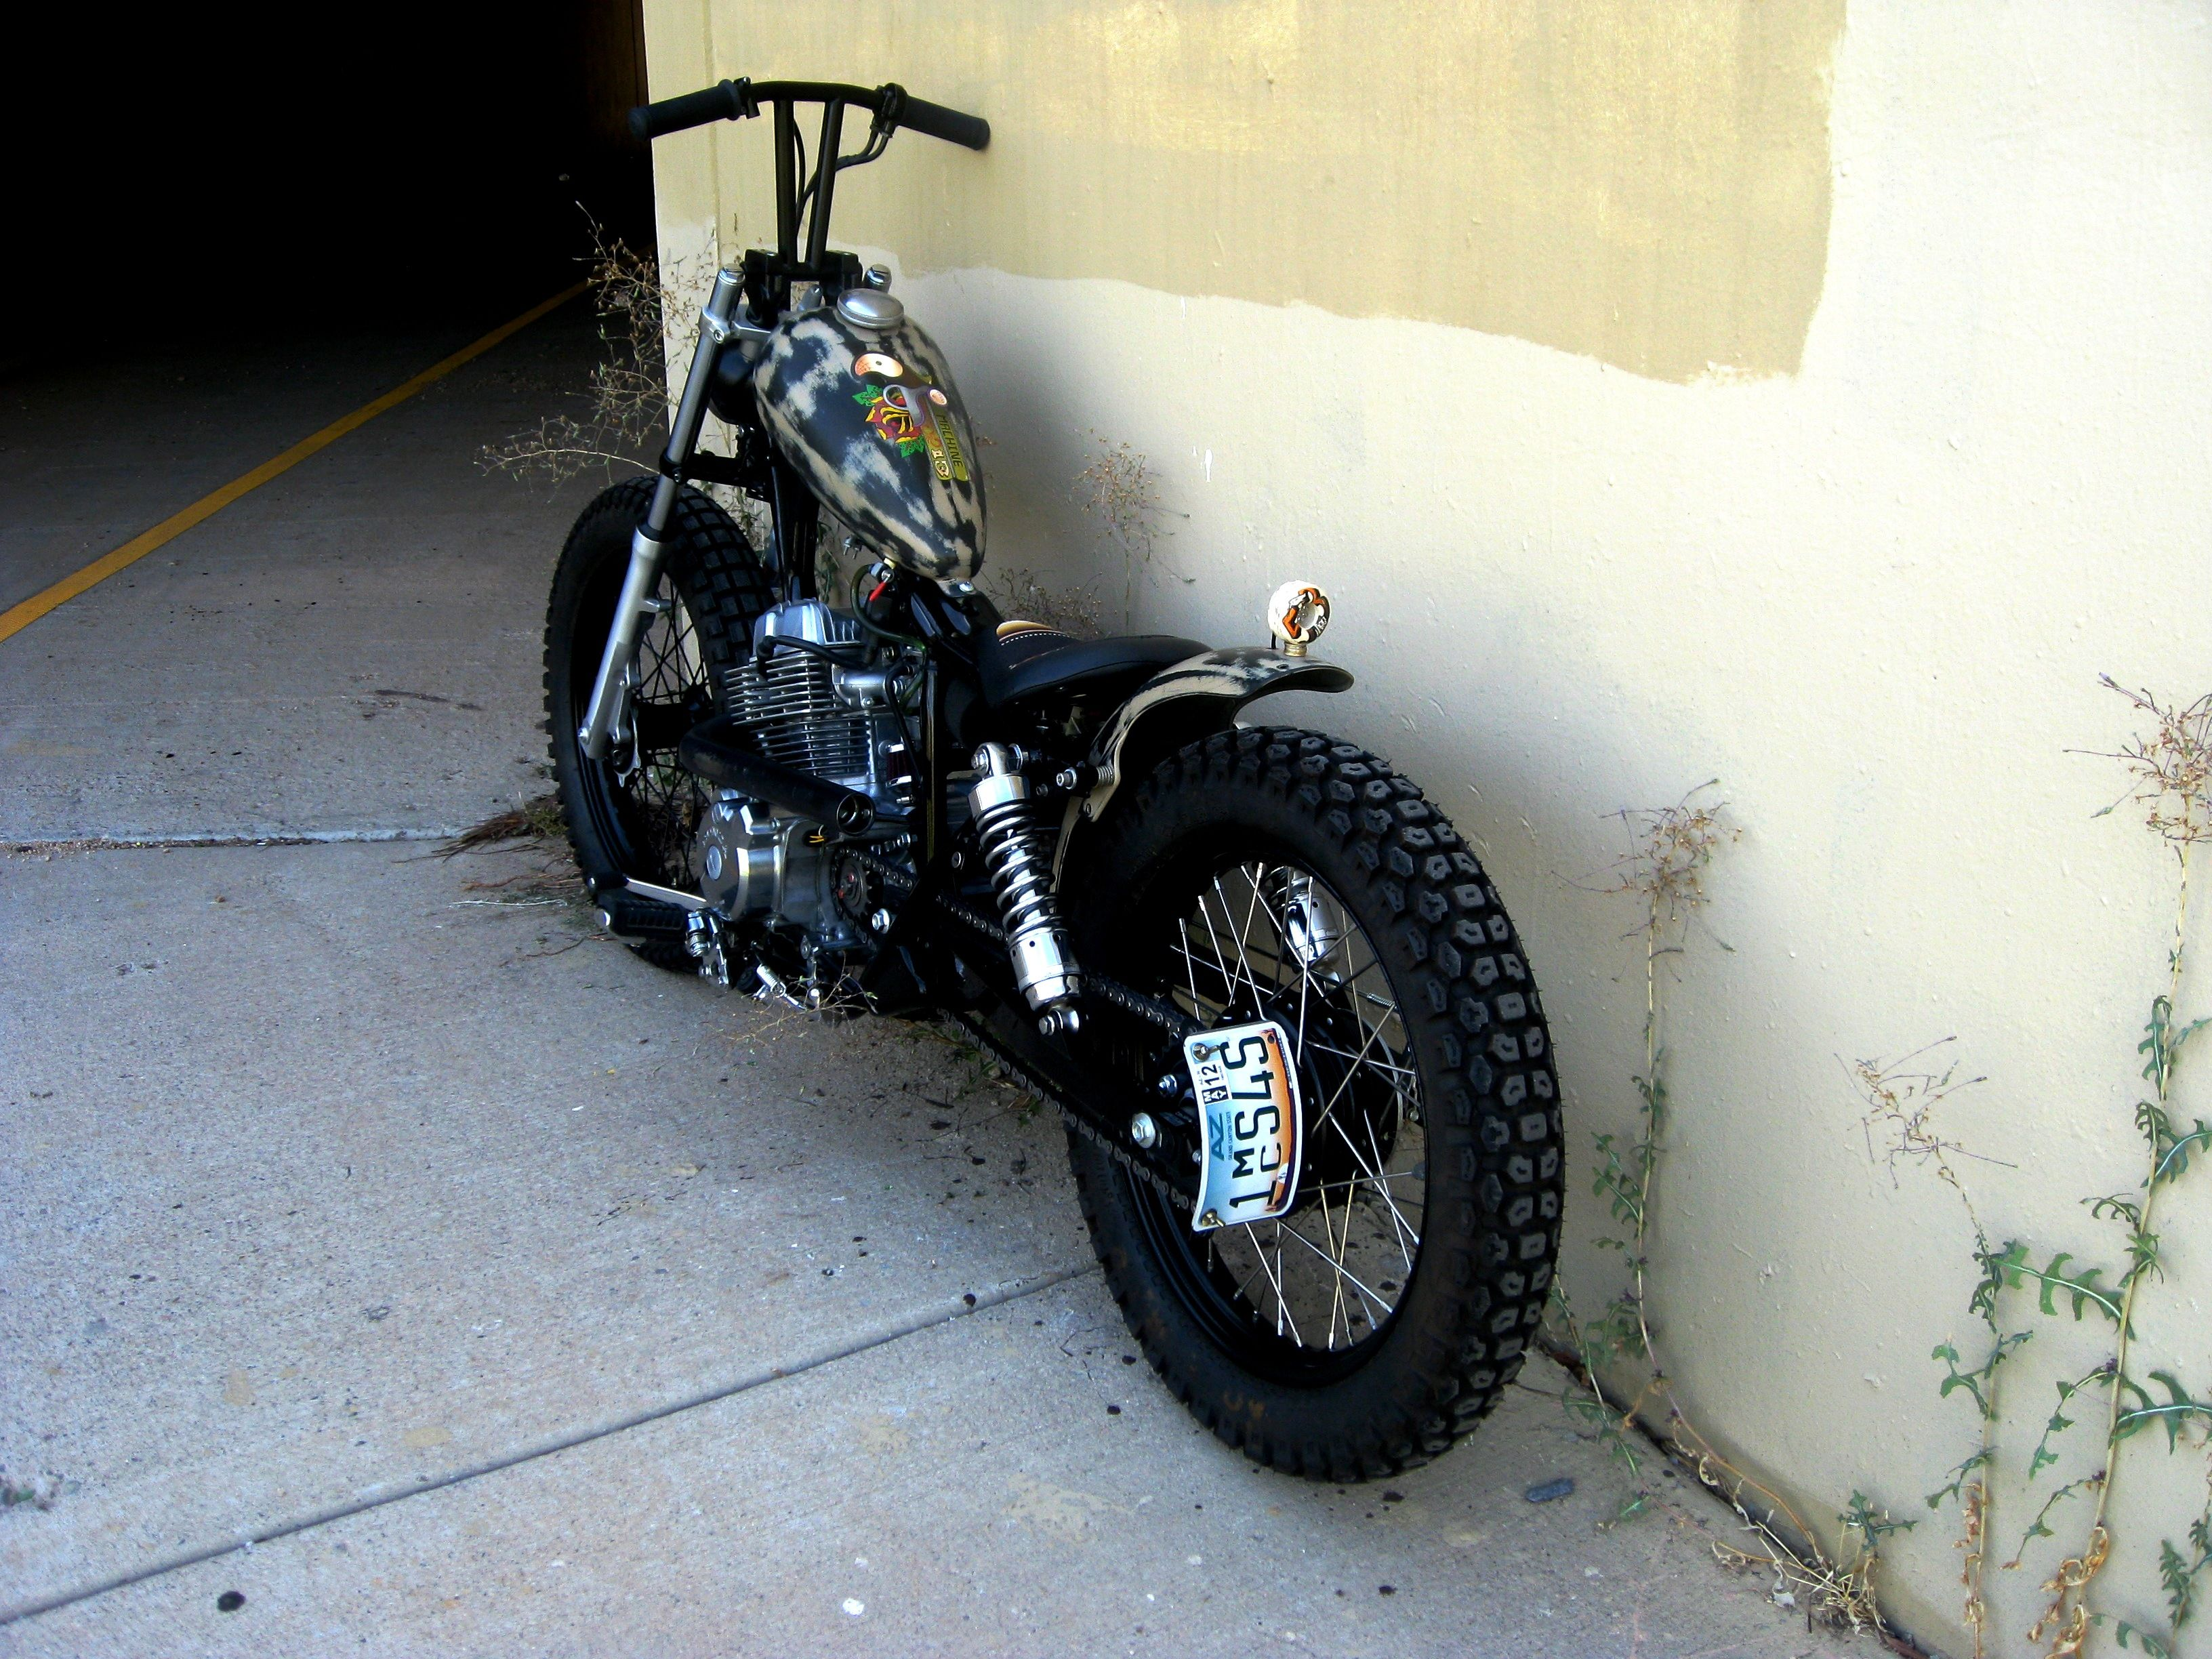 medium resolution of  honda rebel bobber motorcycle